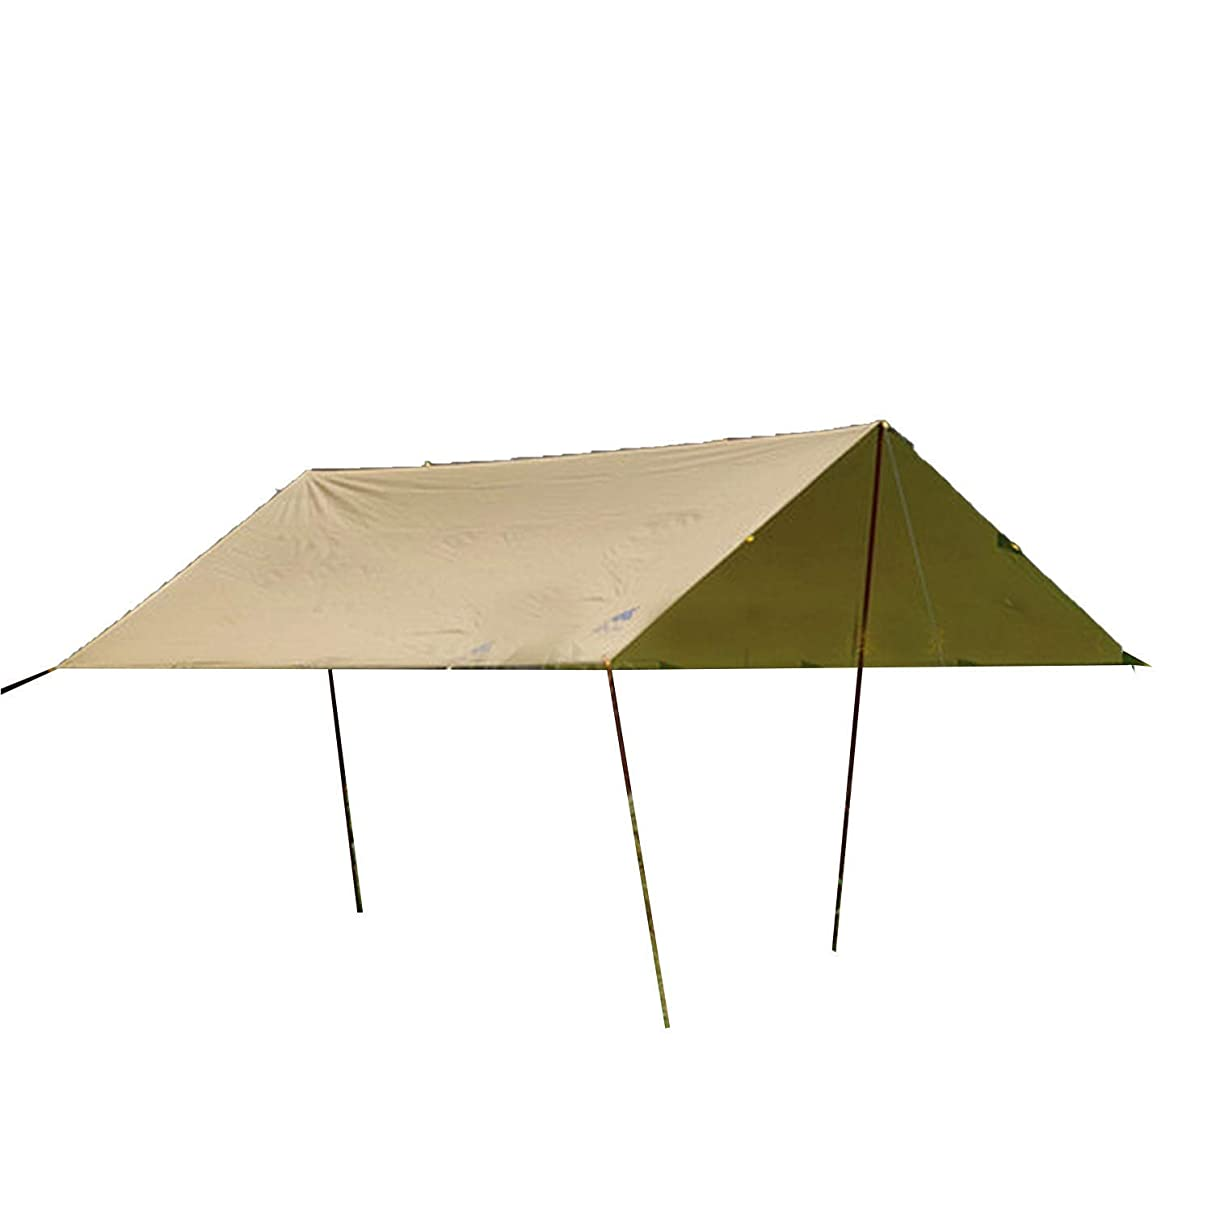 INDEPENDENT-NEWBIE Large Automatic Ultralight Family Beach Tent and Sun Shade UV Cabana Shelter | Camping, Hiking, Fishing | Lightweight, Portable, Breathable, and Windproof | Collapsible,3mx3m Khaki